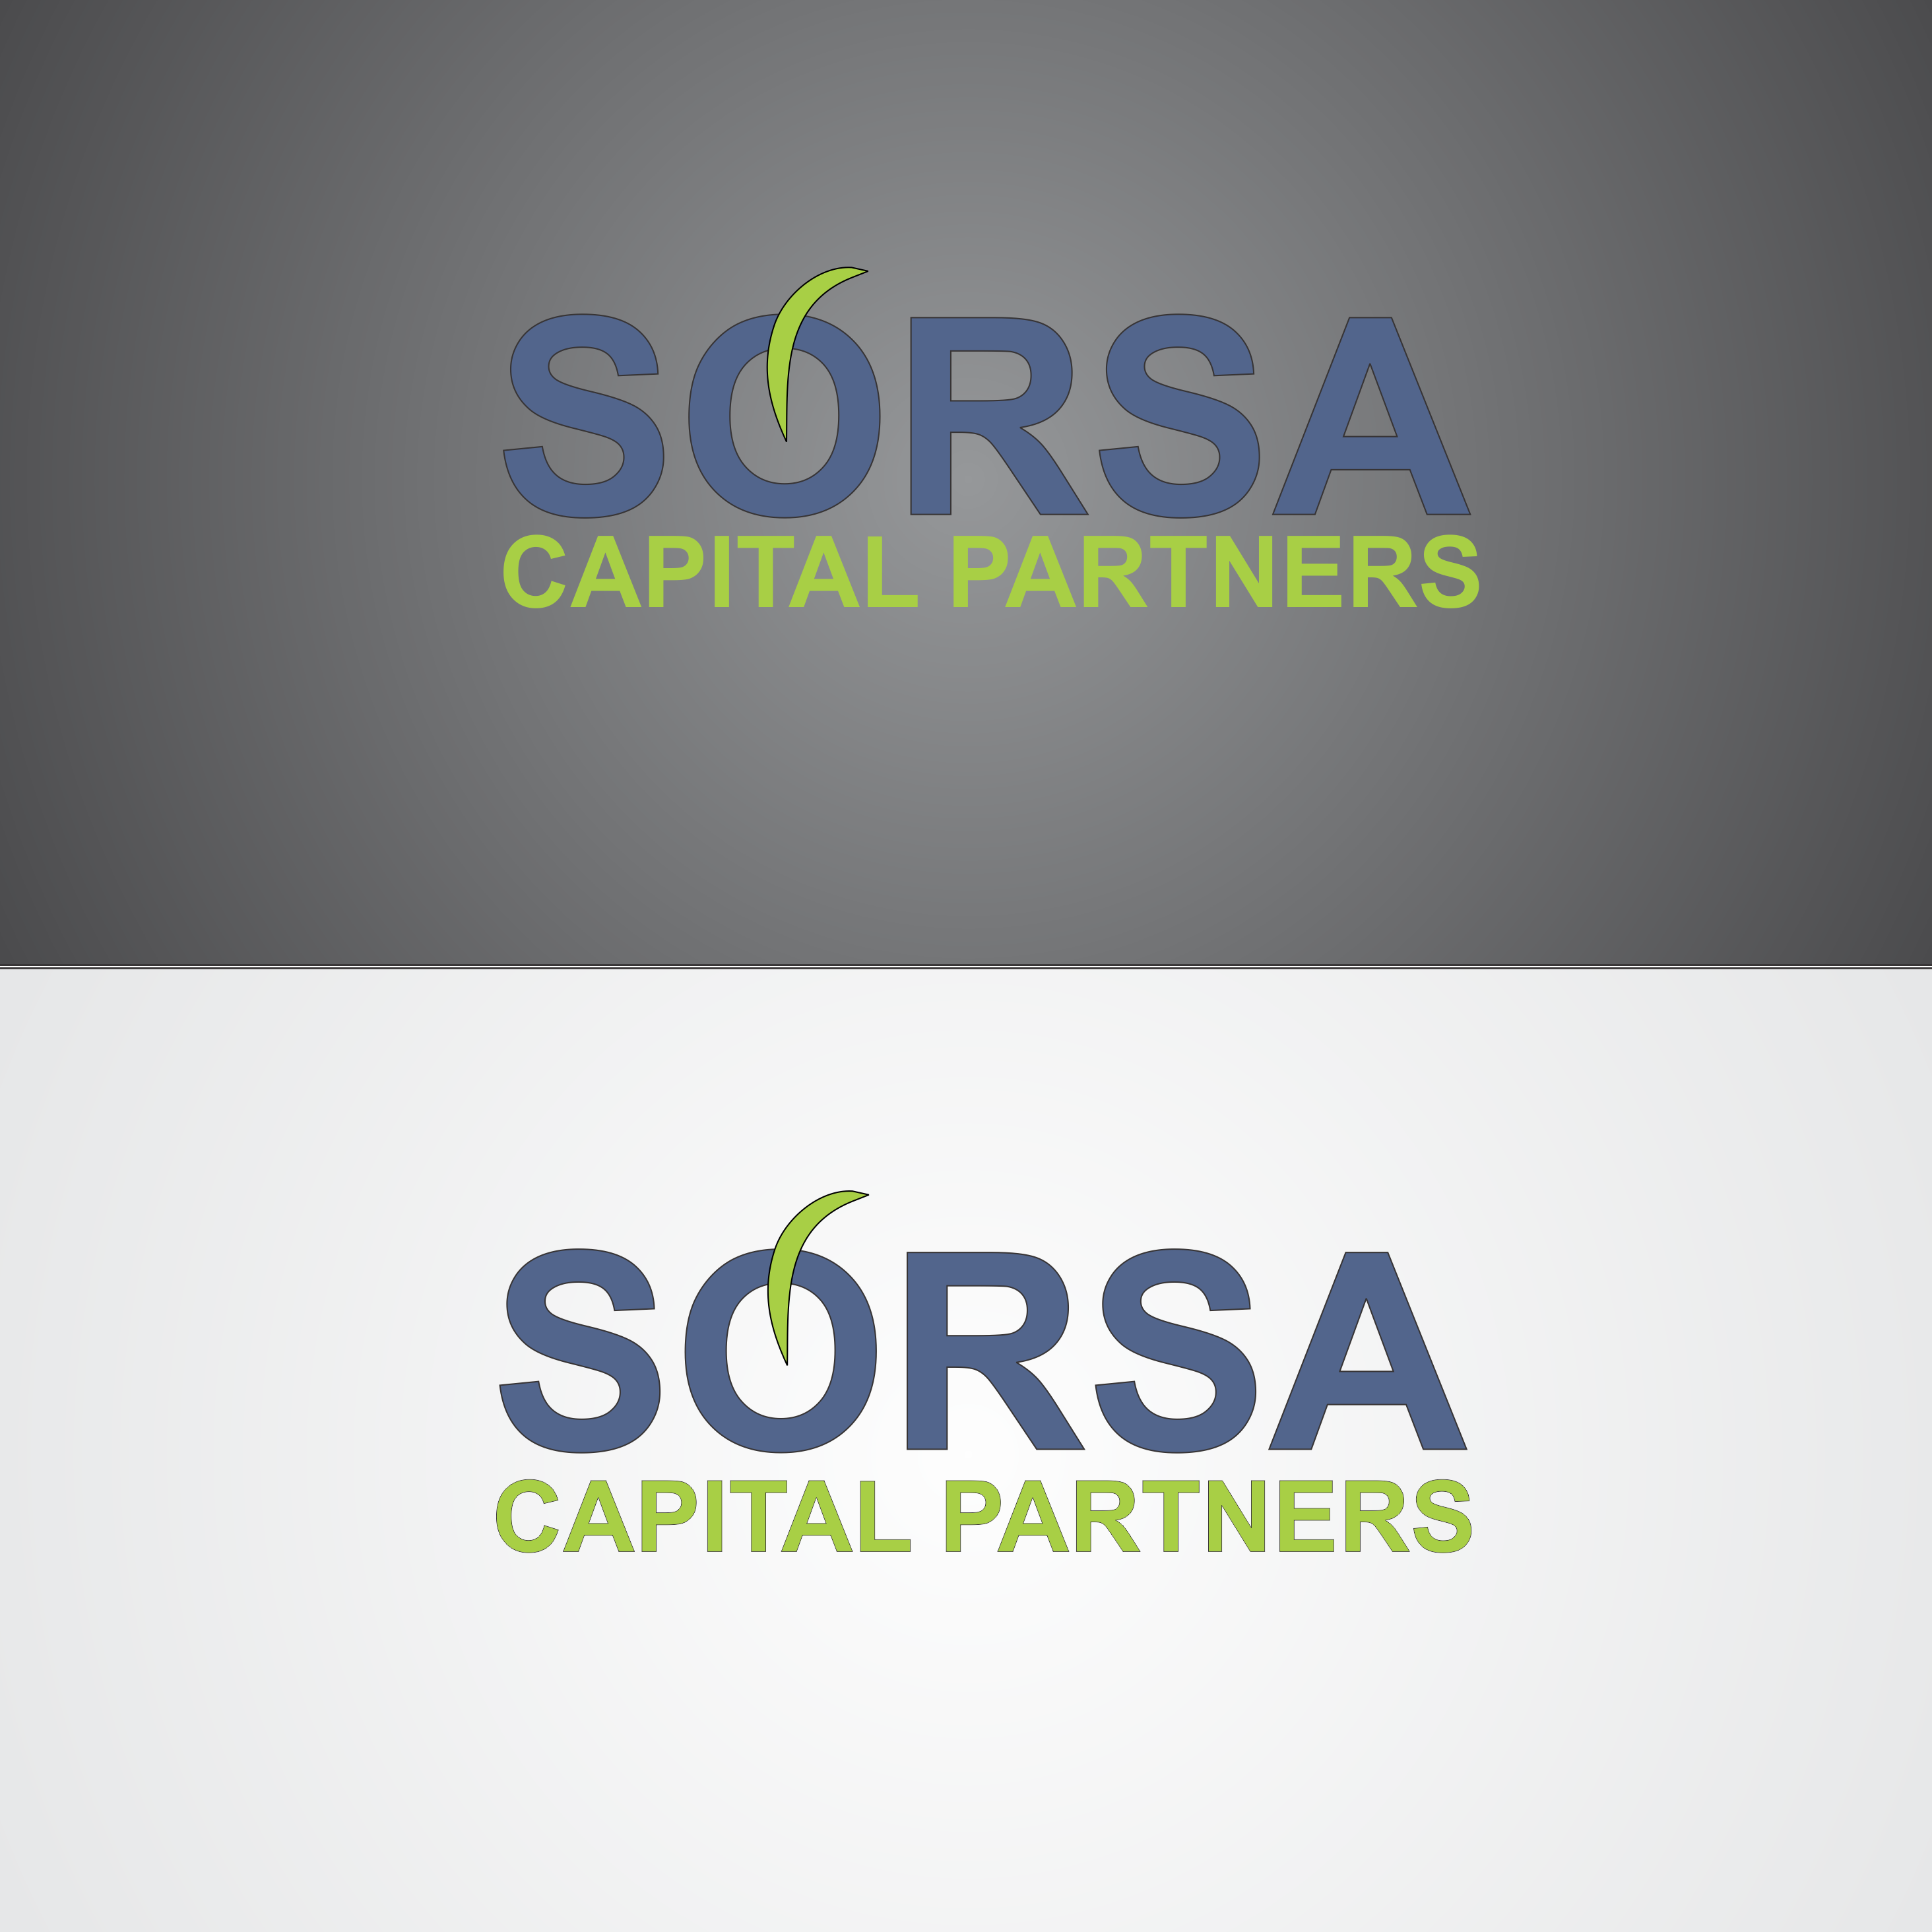 Logo Design by robbiemack - Entry No. 50 in the Logo Design Contest Sorsa Capital Partners Logo Design.